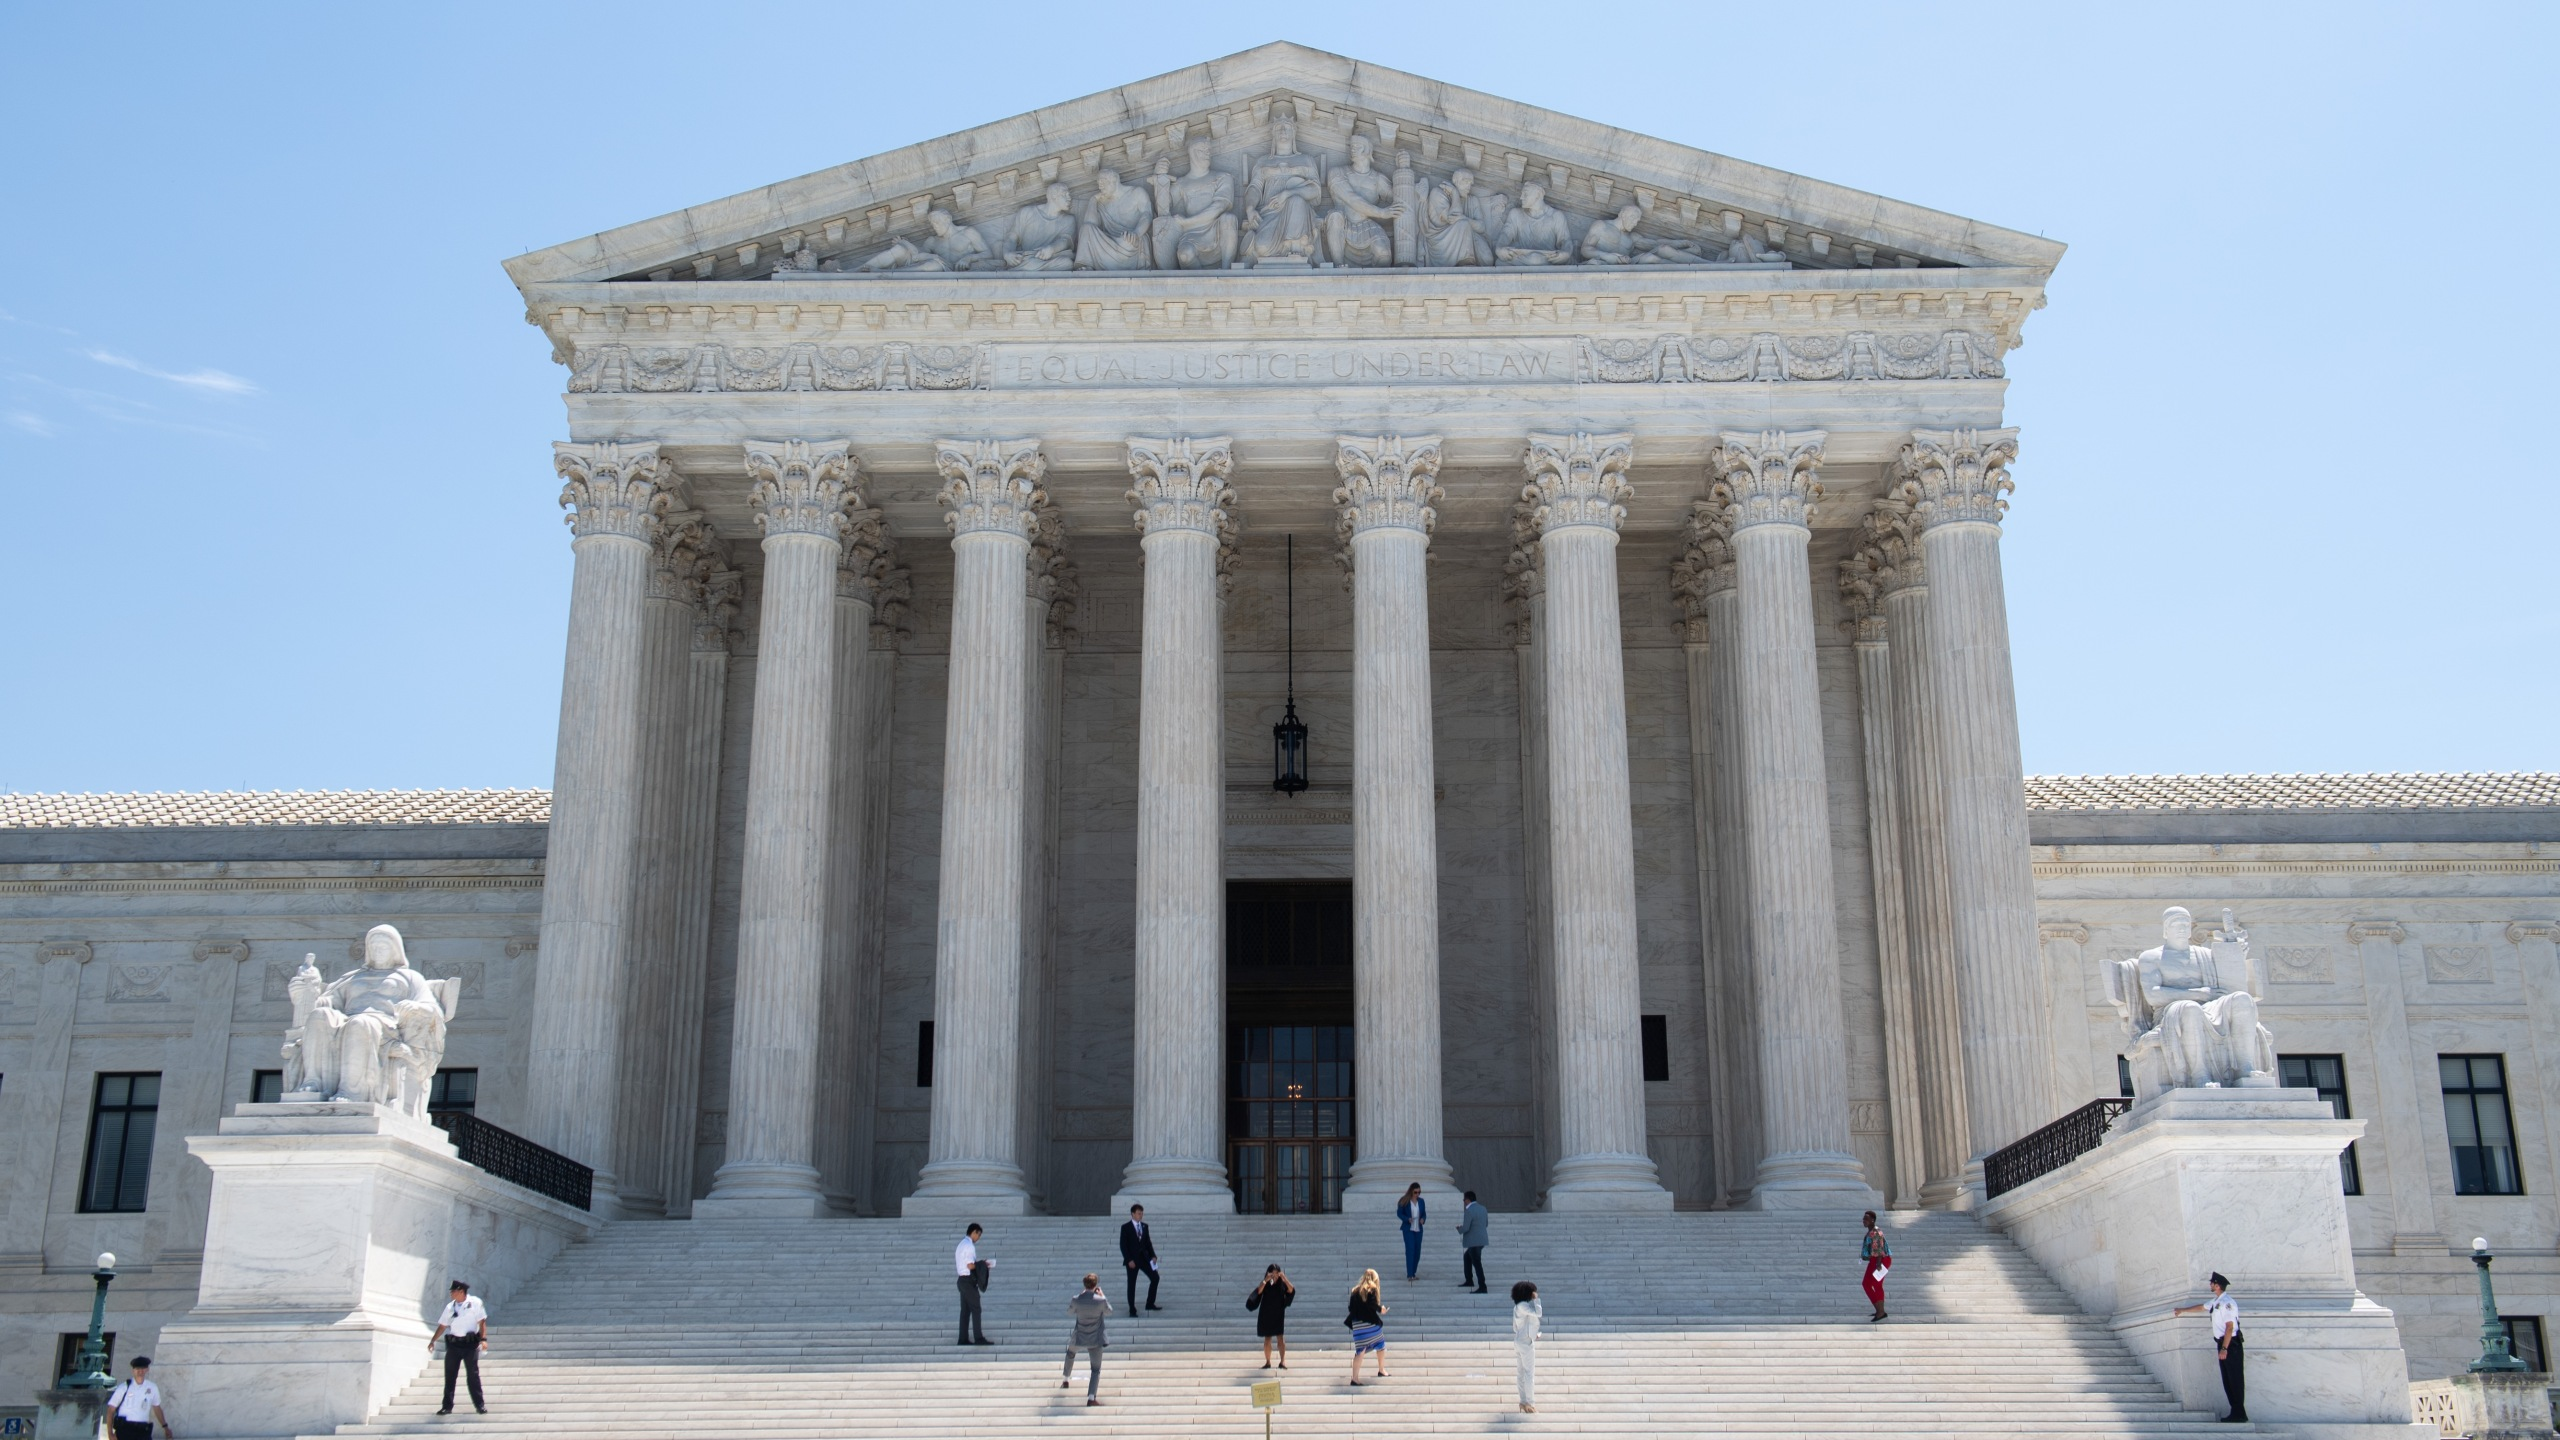 The Supreme Court is seen in Washington, D.C., on June 24, 2019. (Credit: Saul Loeb / AFP / Getty Images)